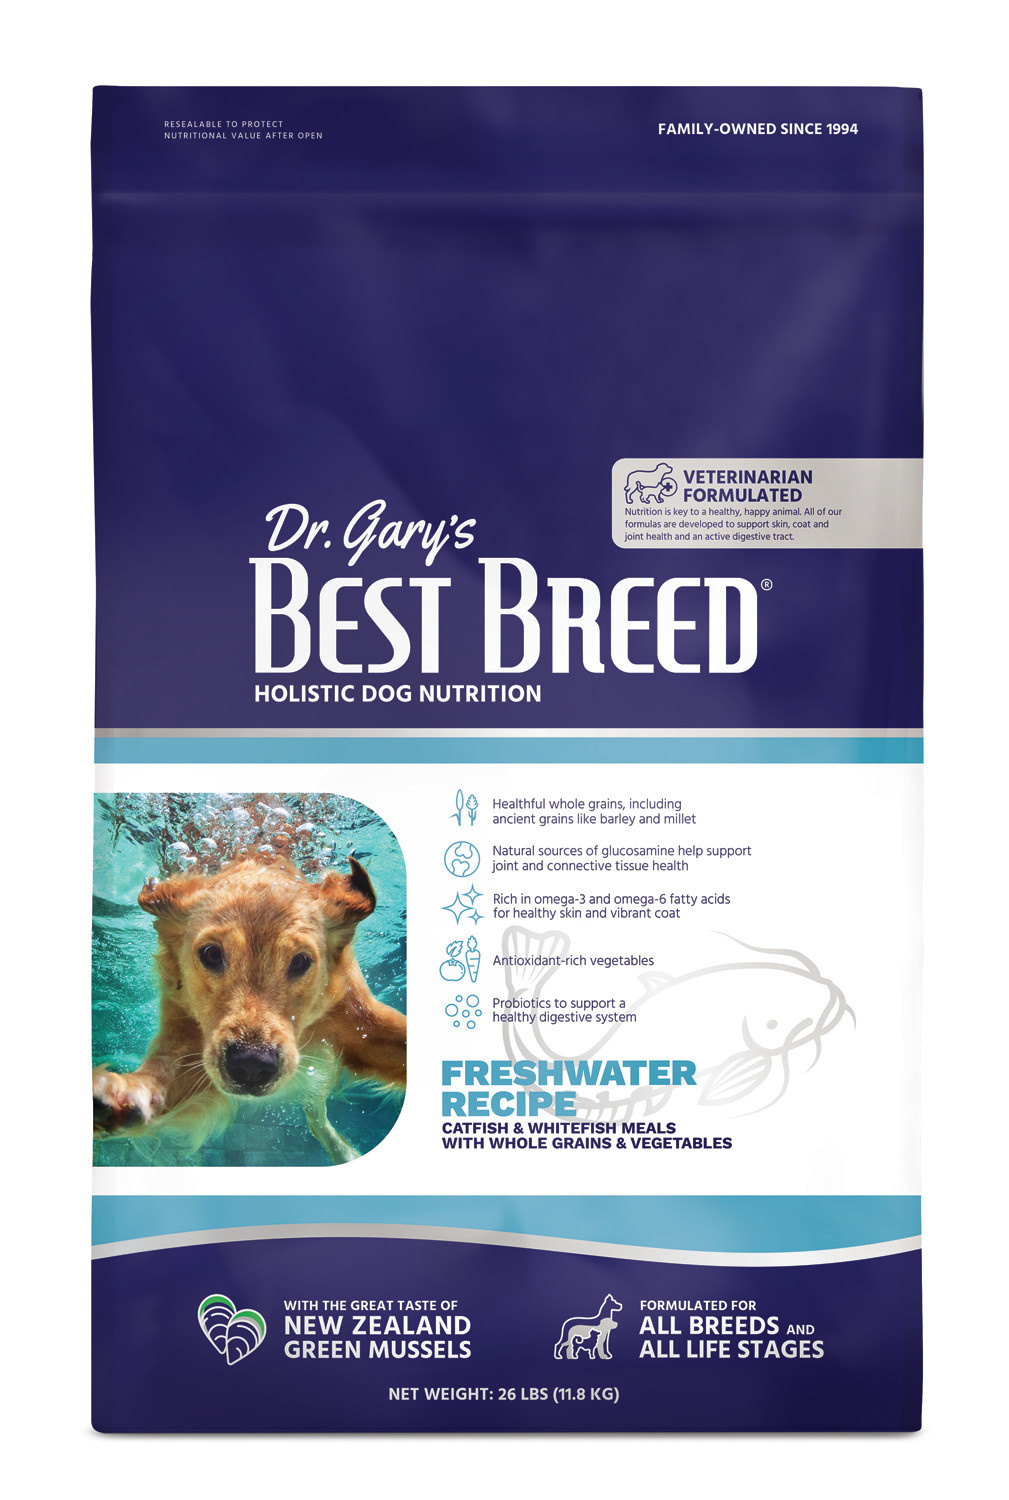 Dr. Gary's Best Breed Dr. Gary's Best Breed FRESHWATER RECIPE Catfish & Whole Grains-26 lbs